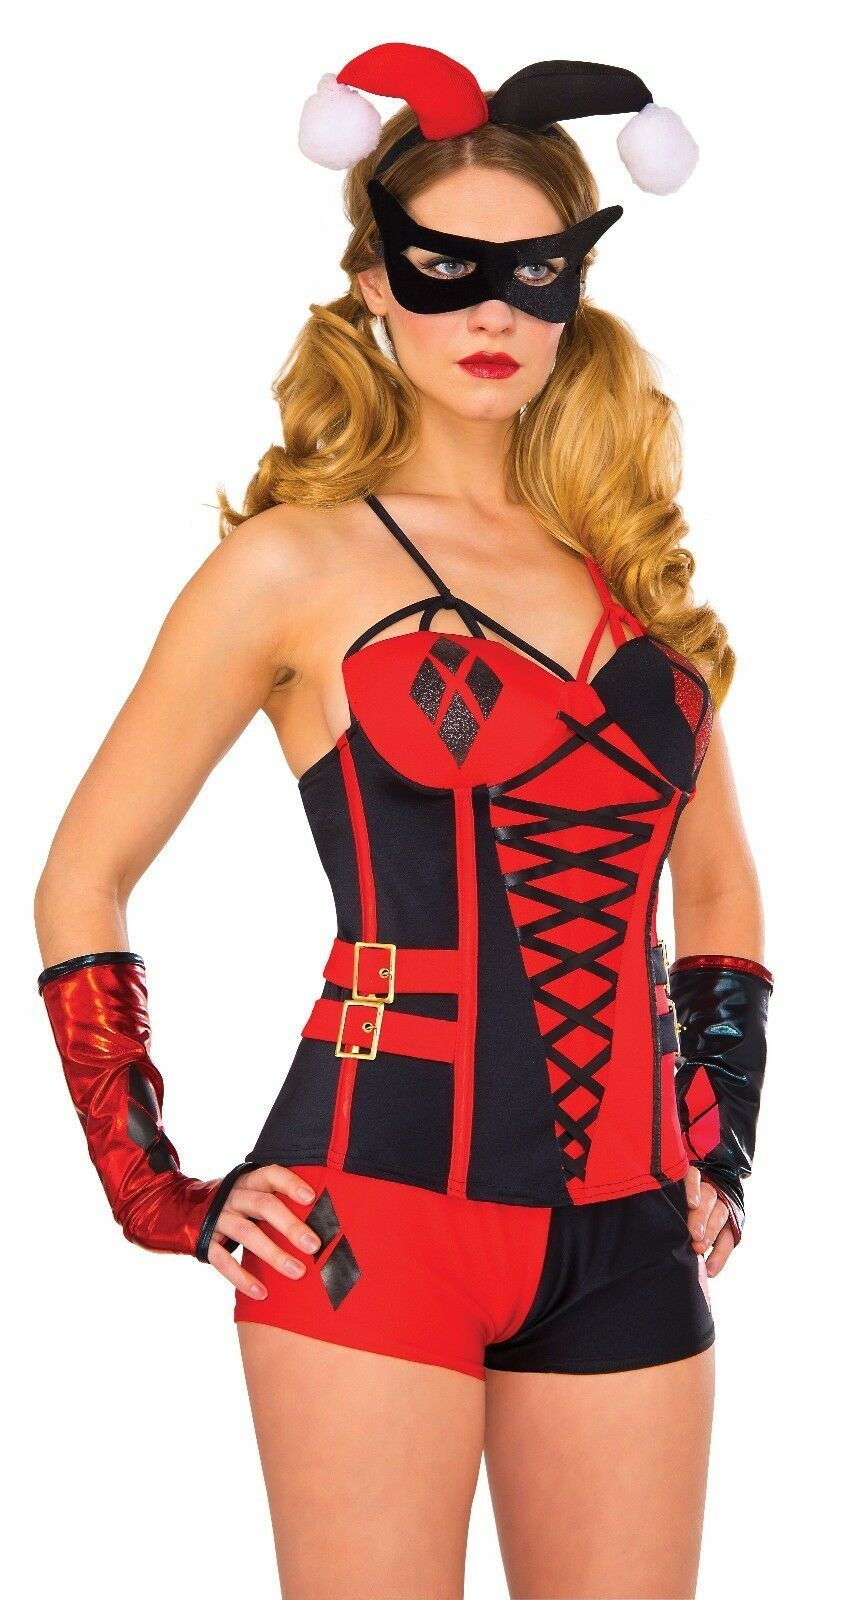 Primary image for Rubies DC Comics Deluxe Adult Harley Quinn Corset Halloween Costume 840003